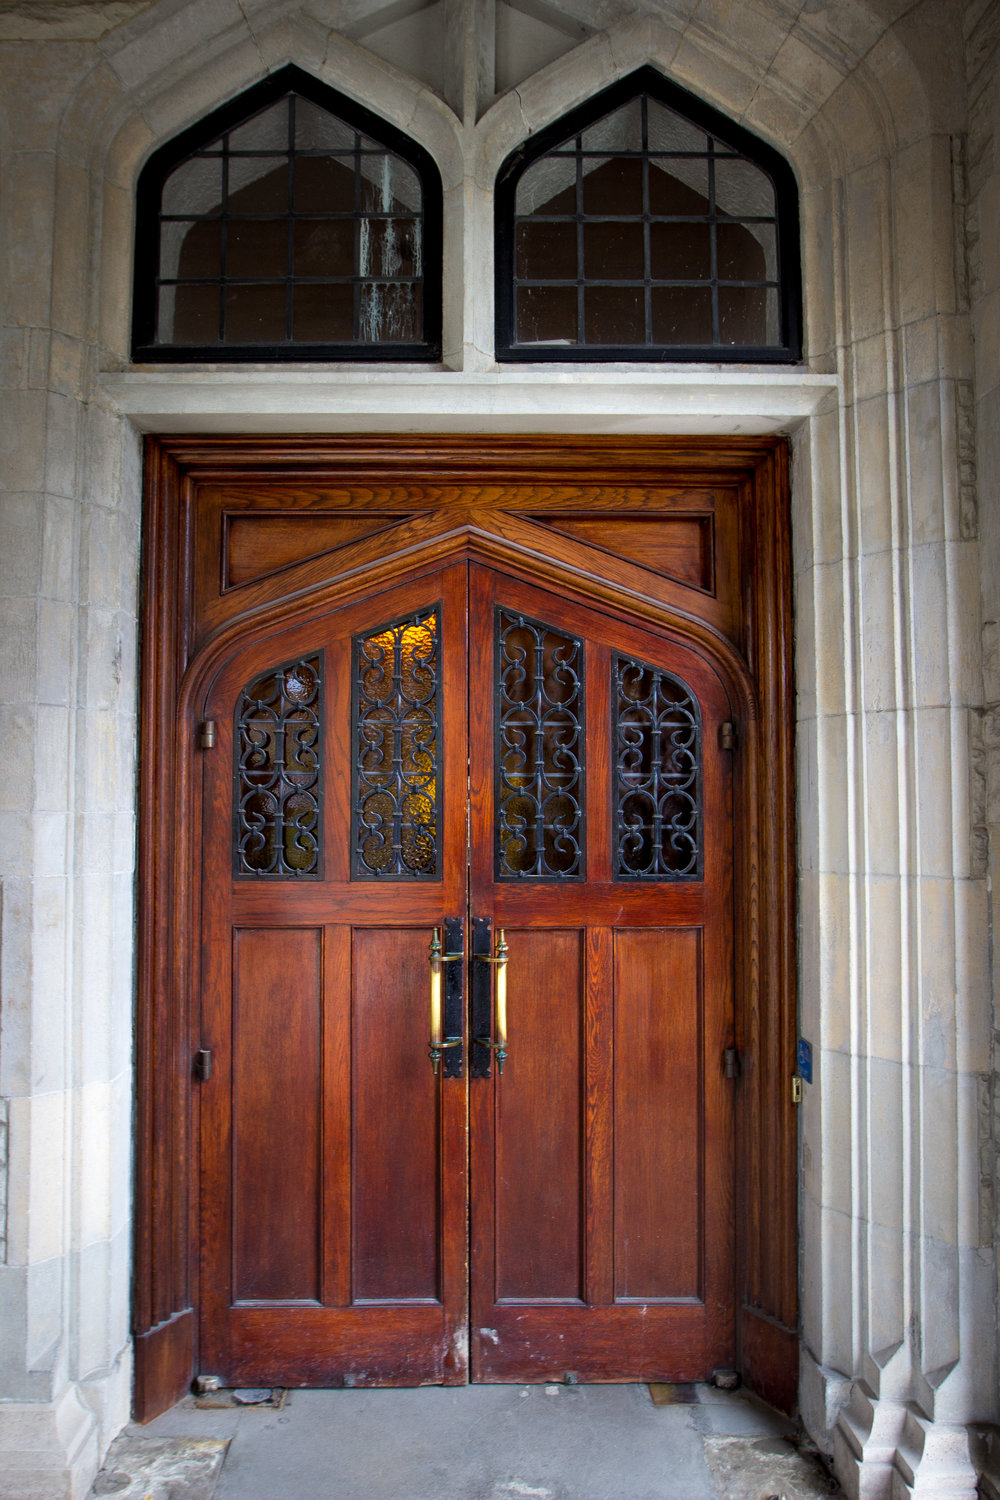 The Doors to the Castle